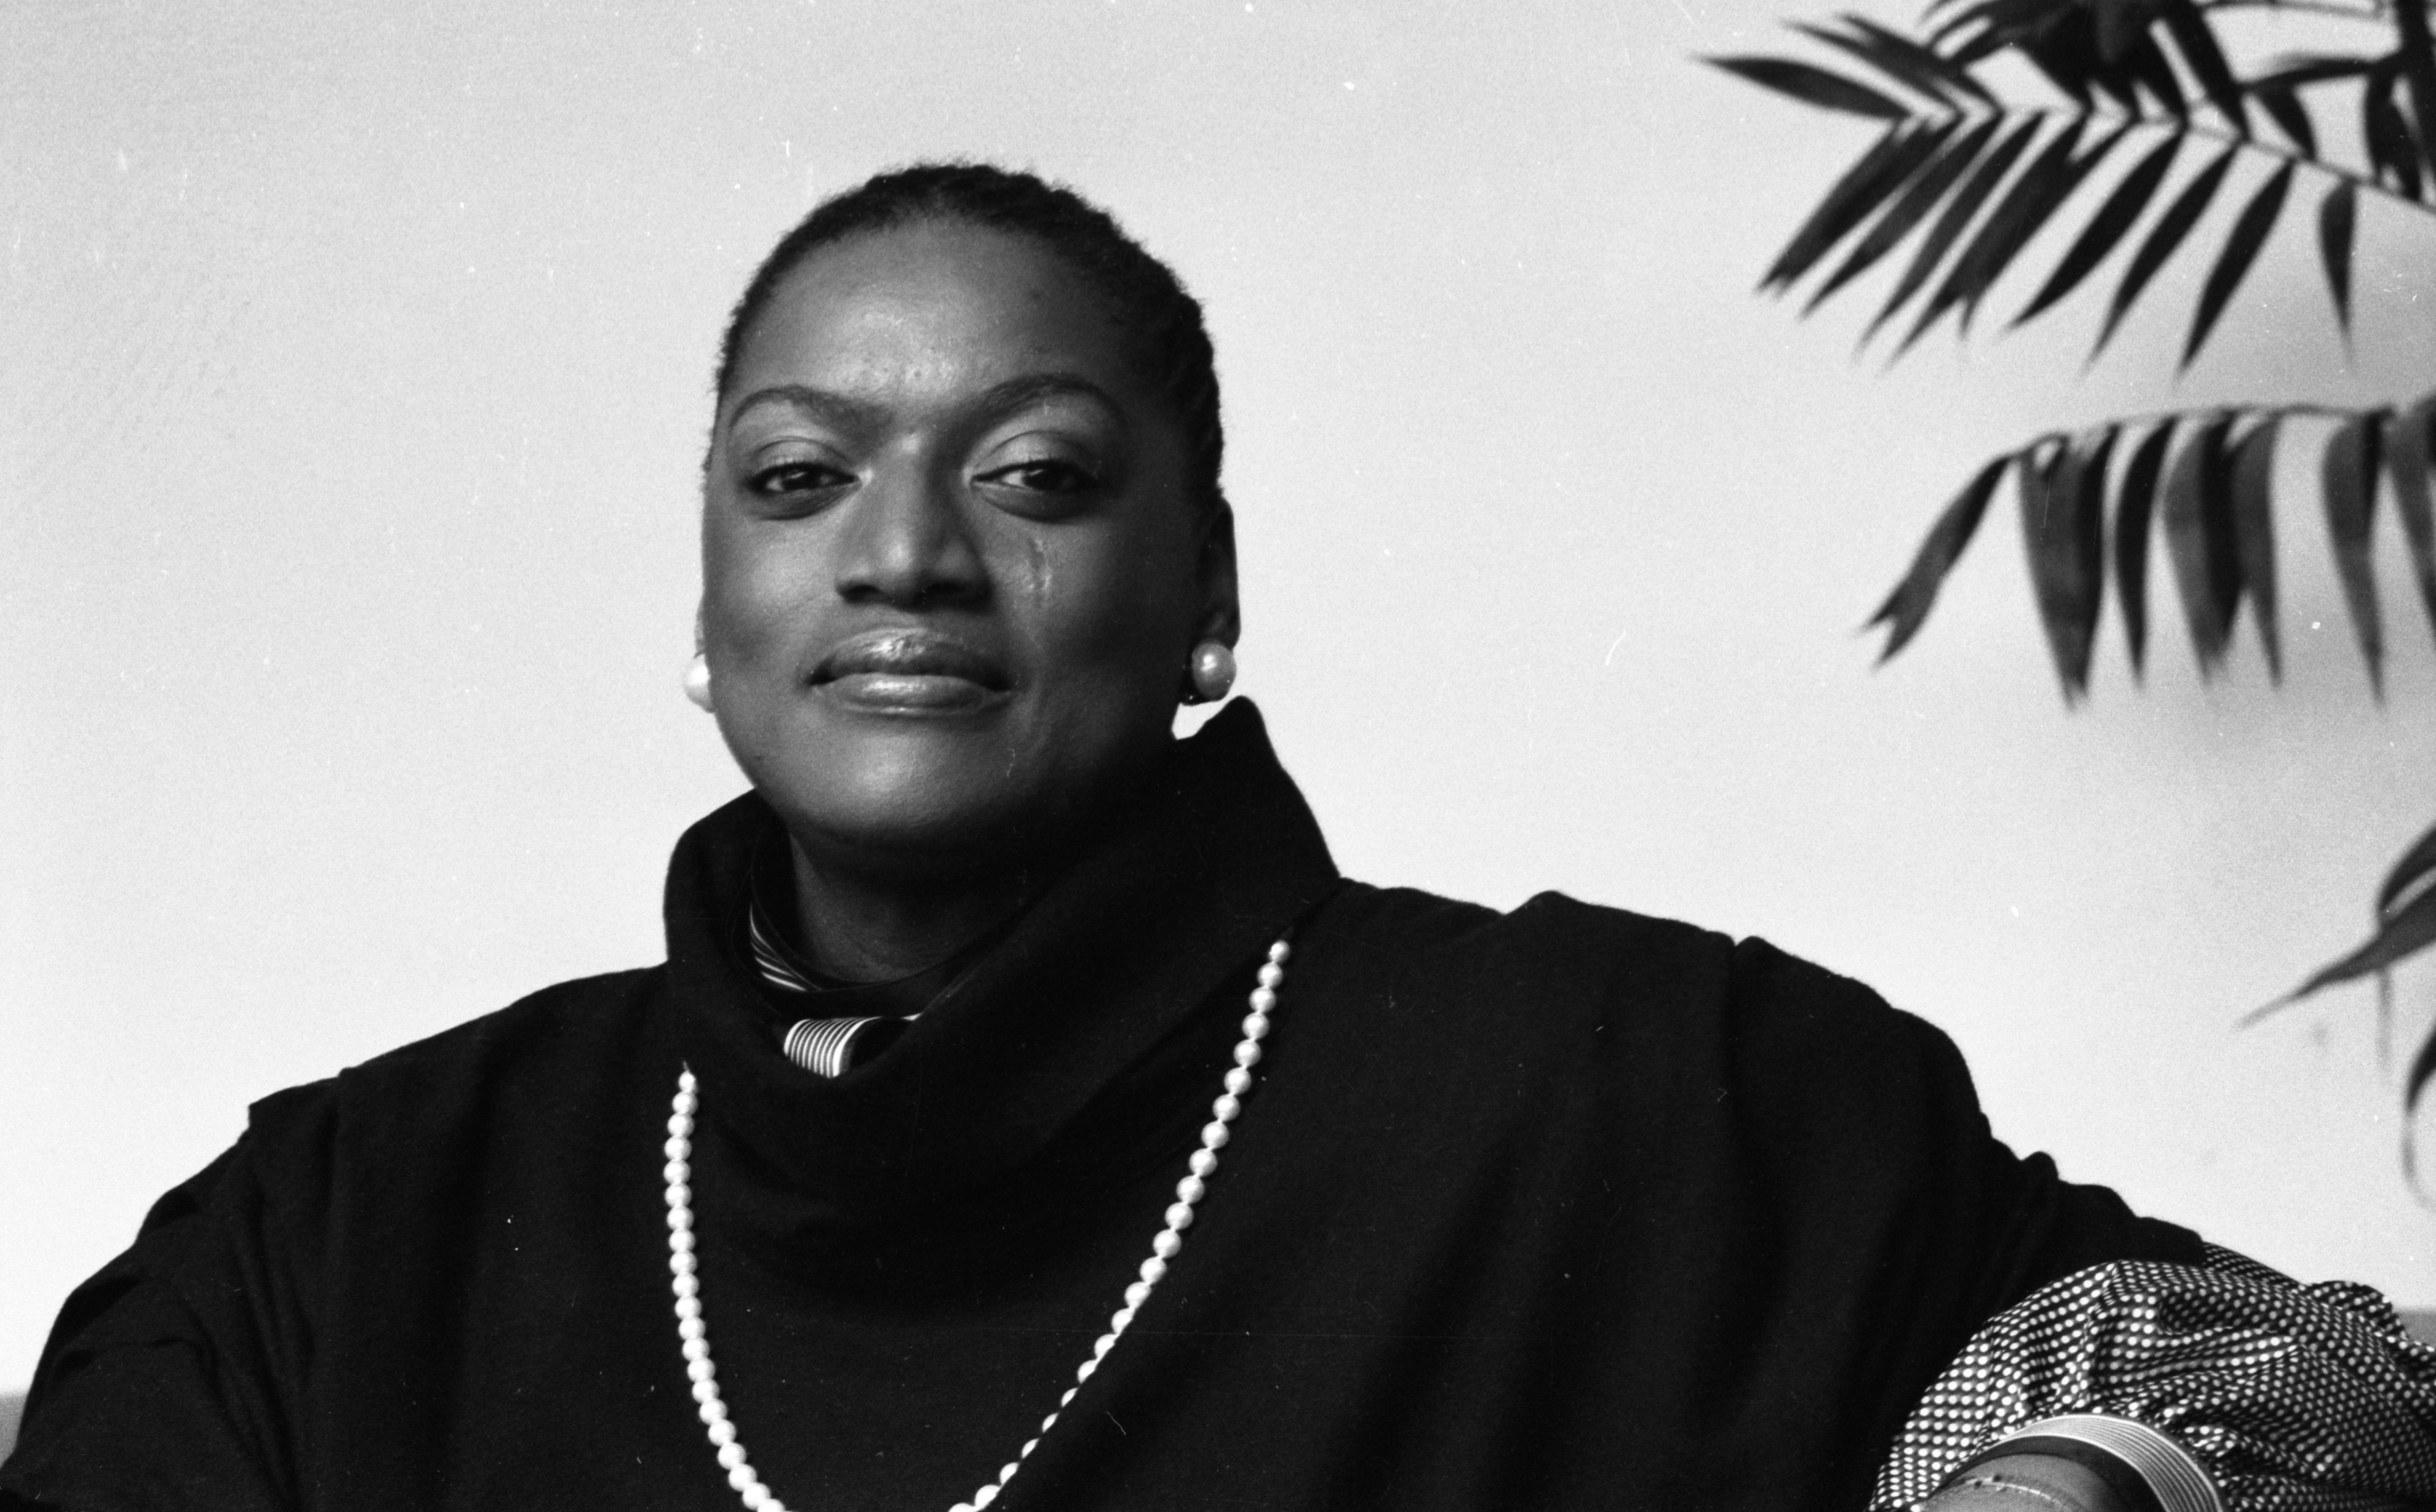 Jessye Norman at the University of Michigan School of Music, October 1983 image